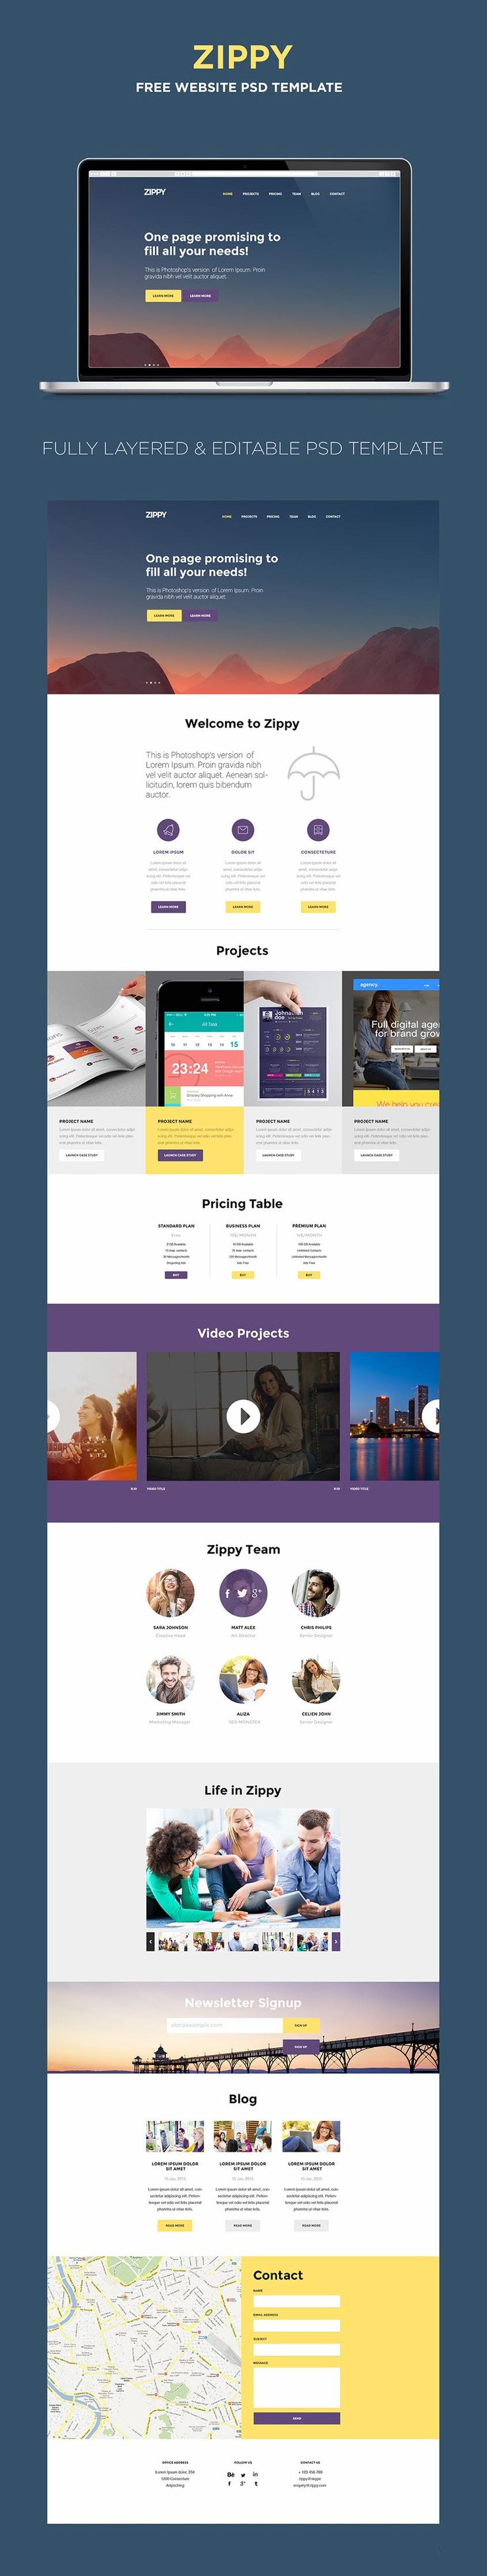 32 best one page website images on Pinterest | Design websites ...